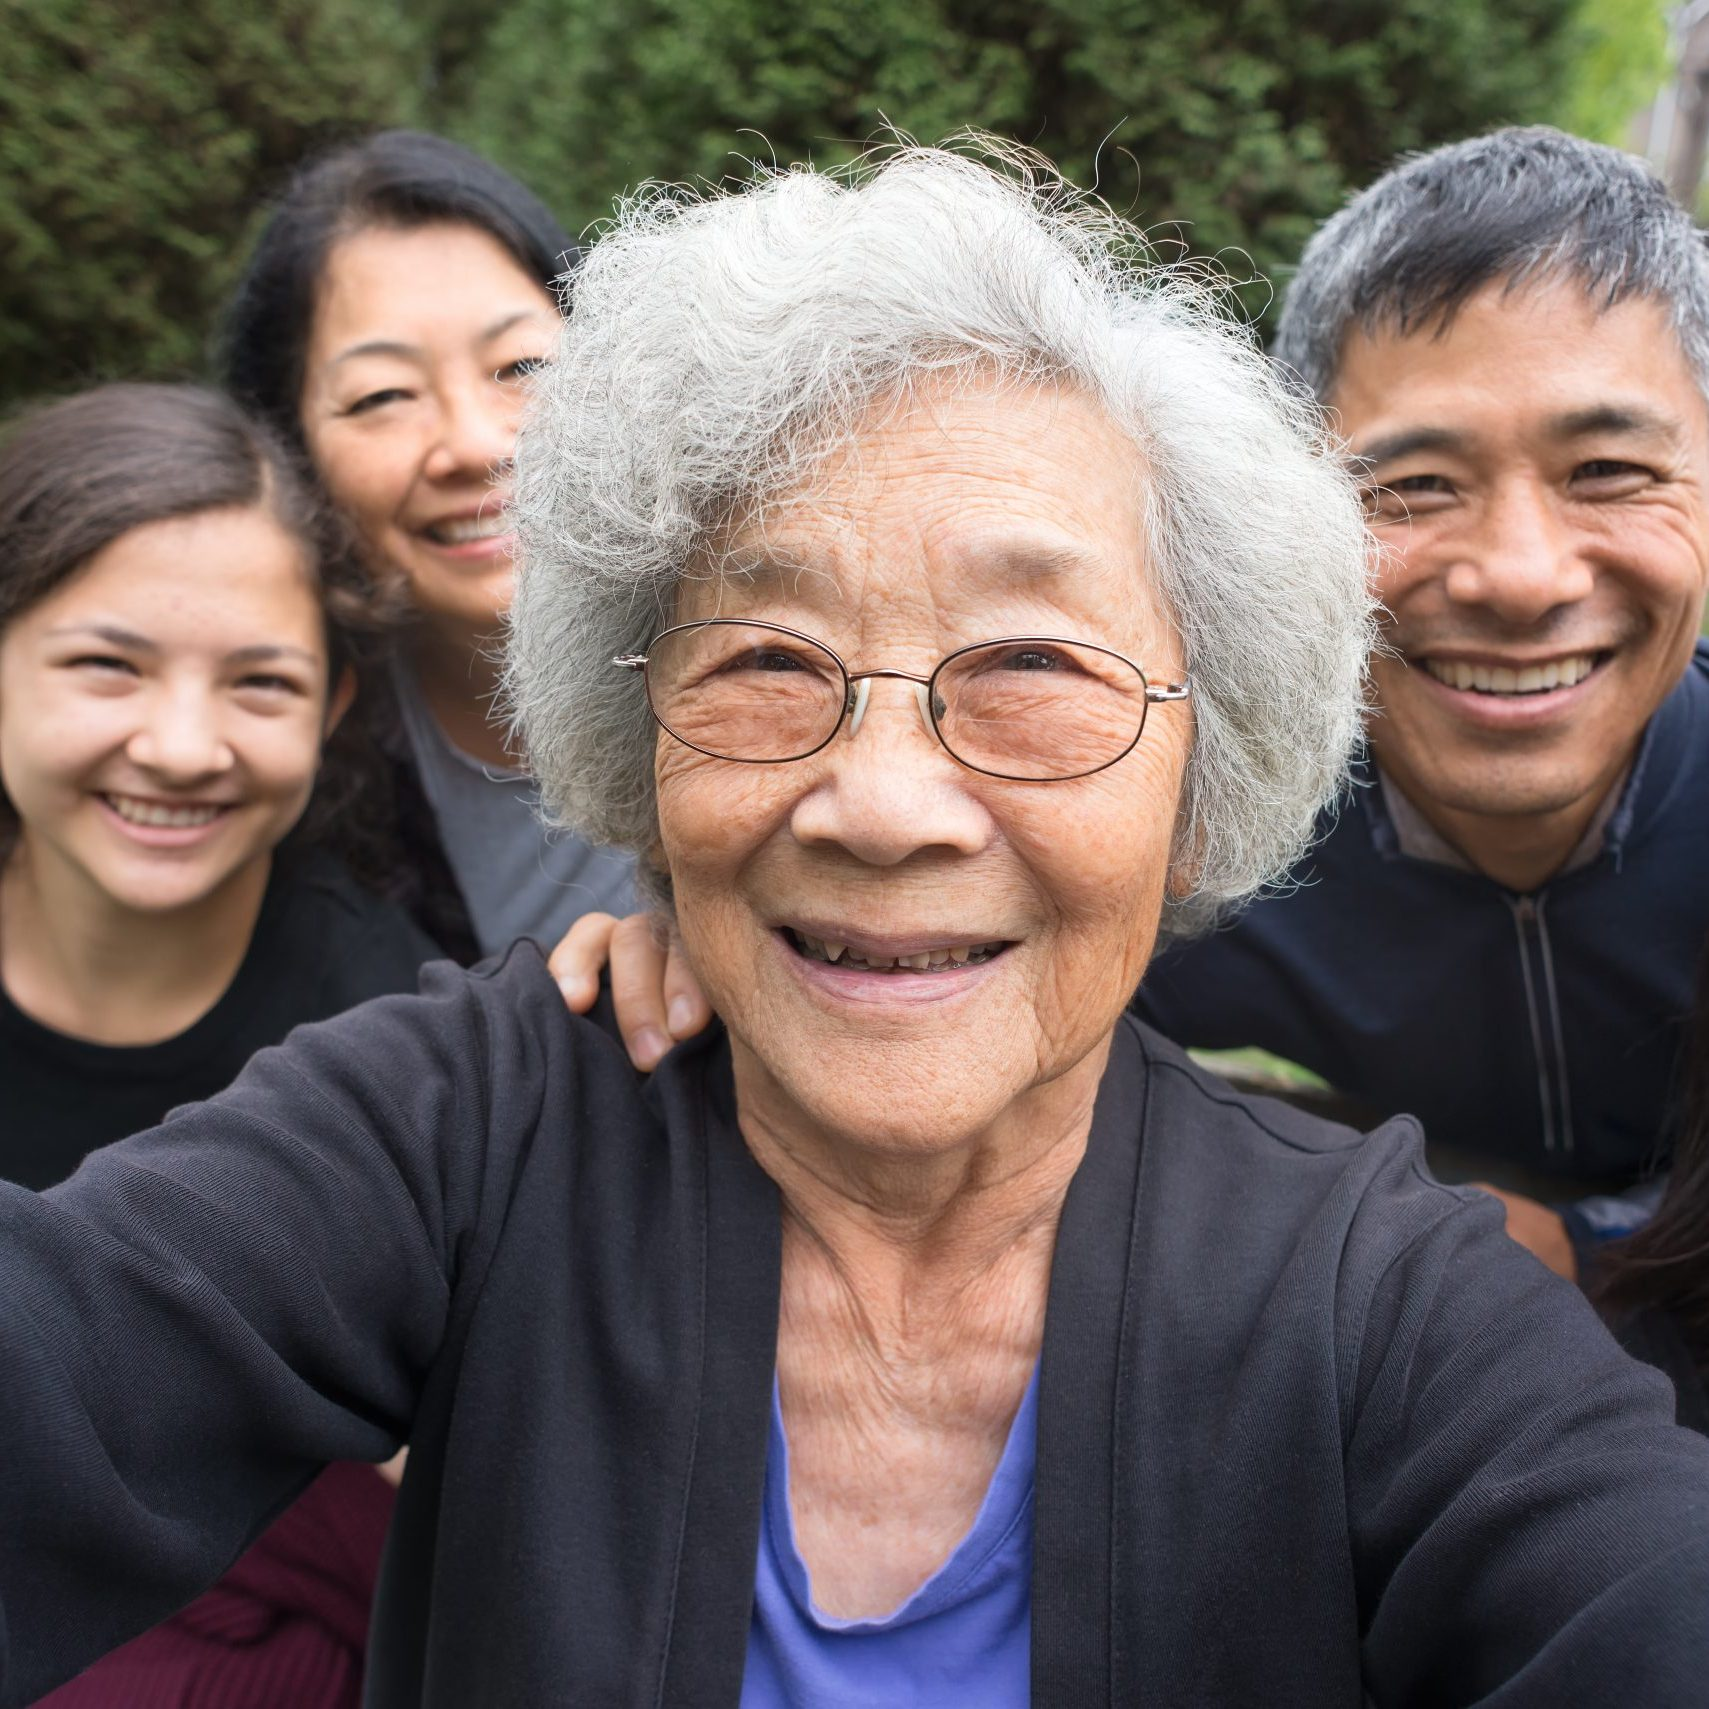 An old lady with her family behind